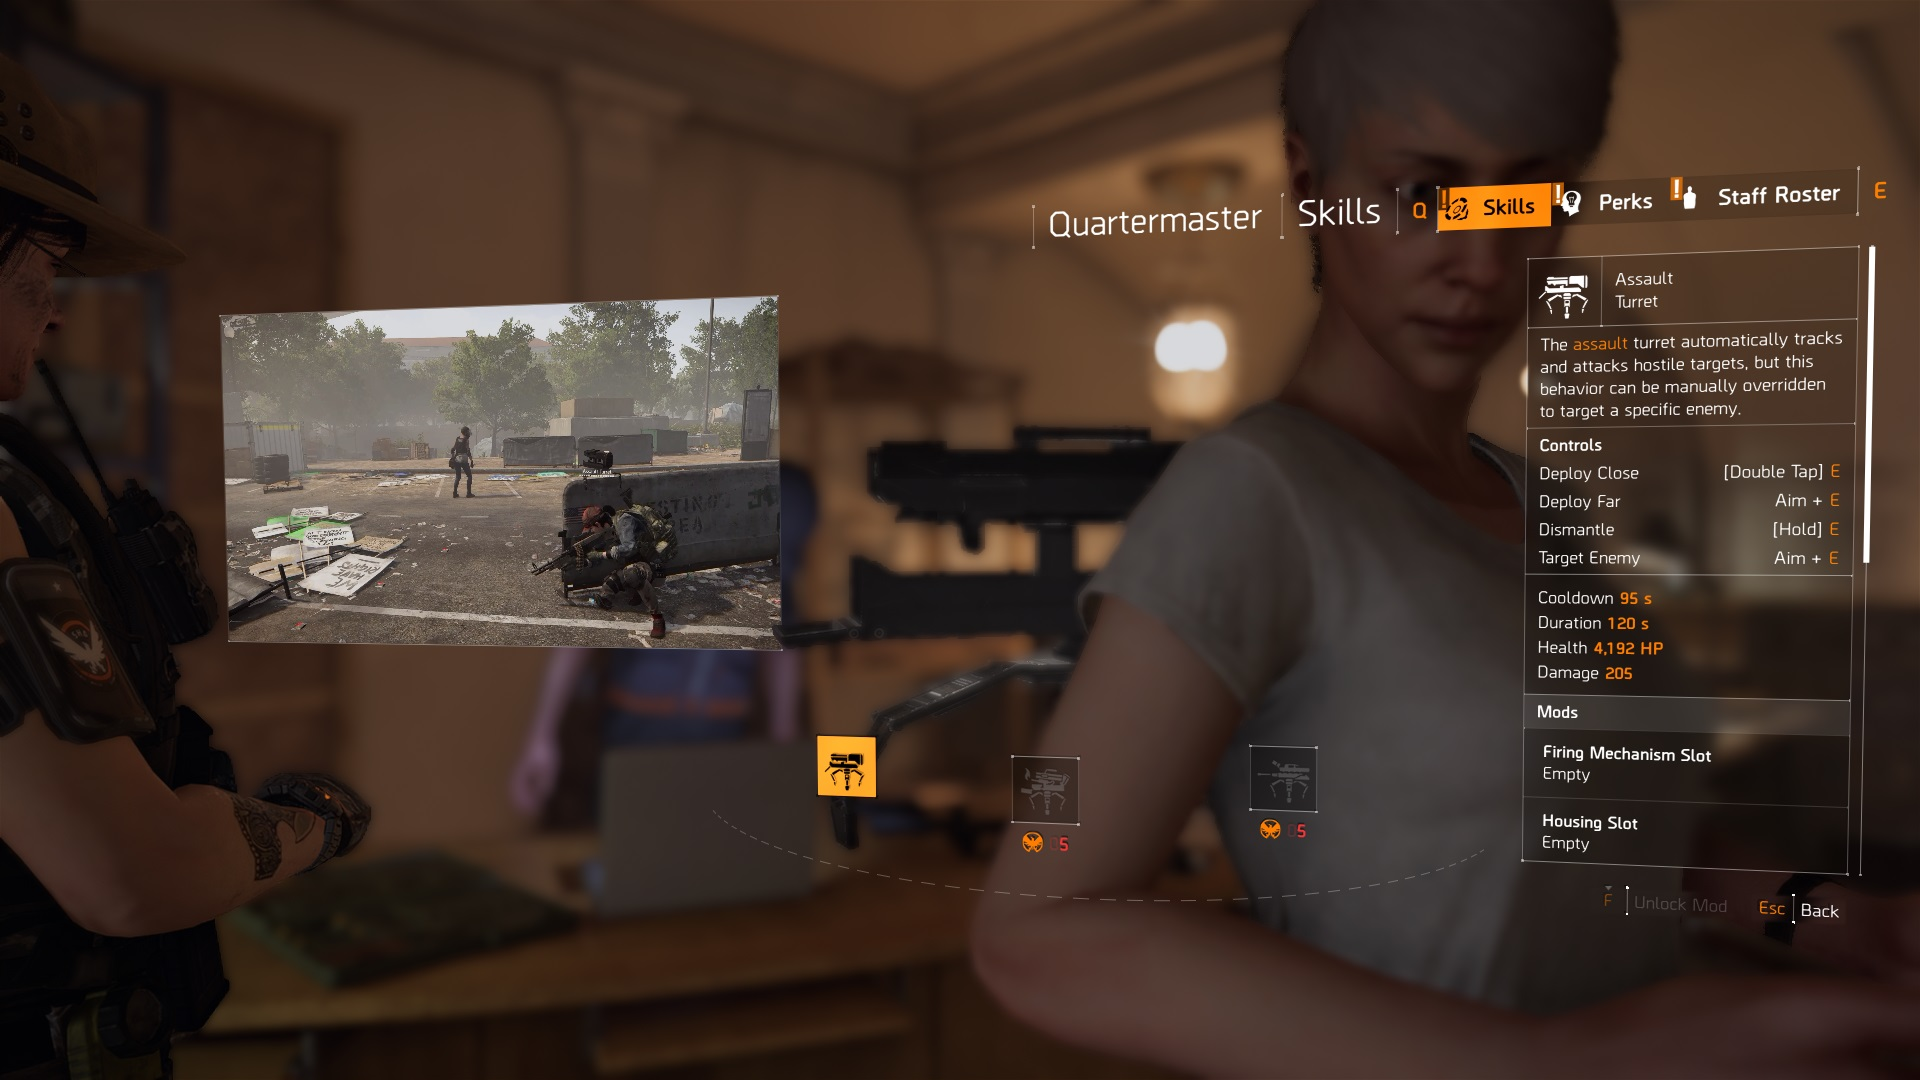 The Division 2 Learning About Skills